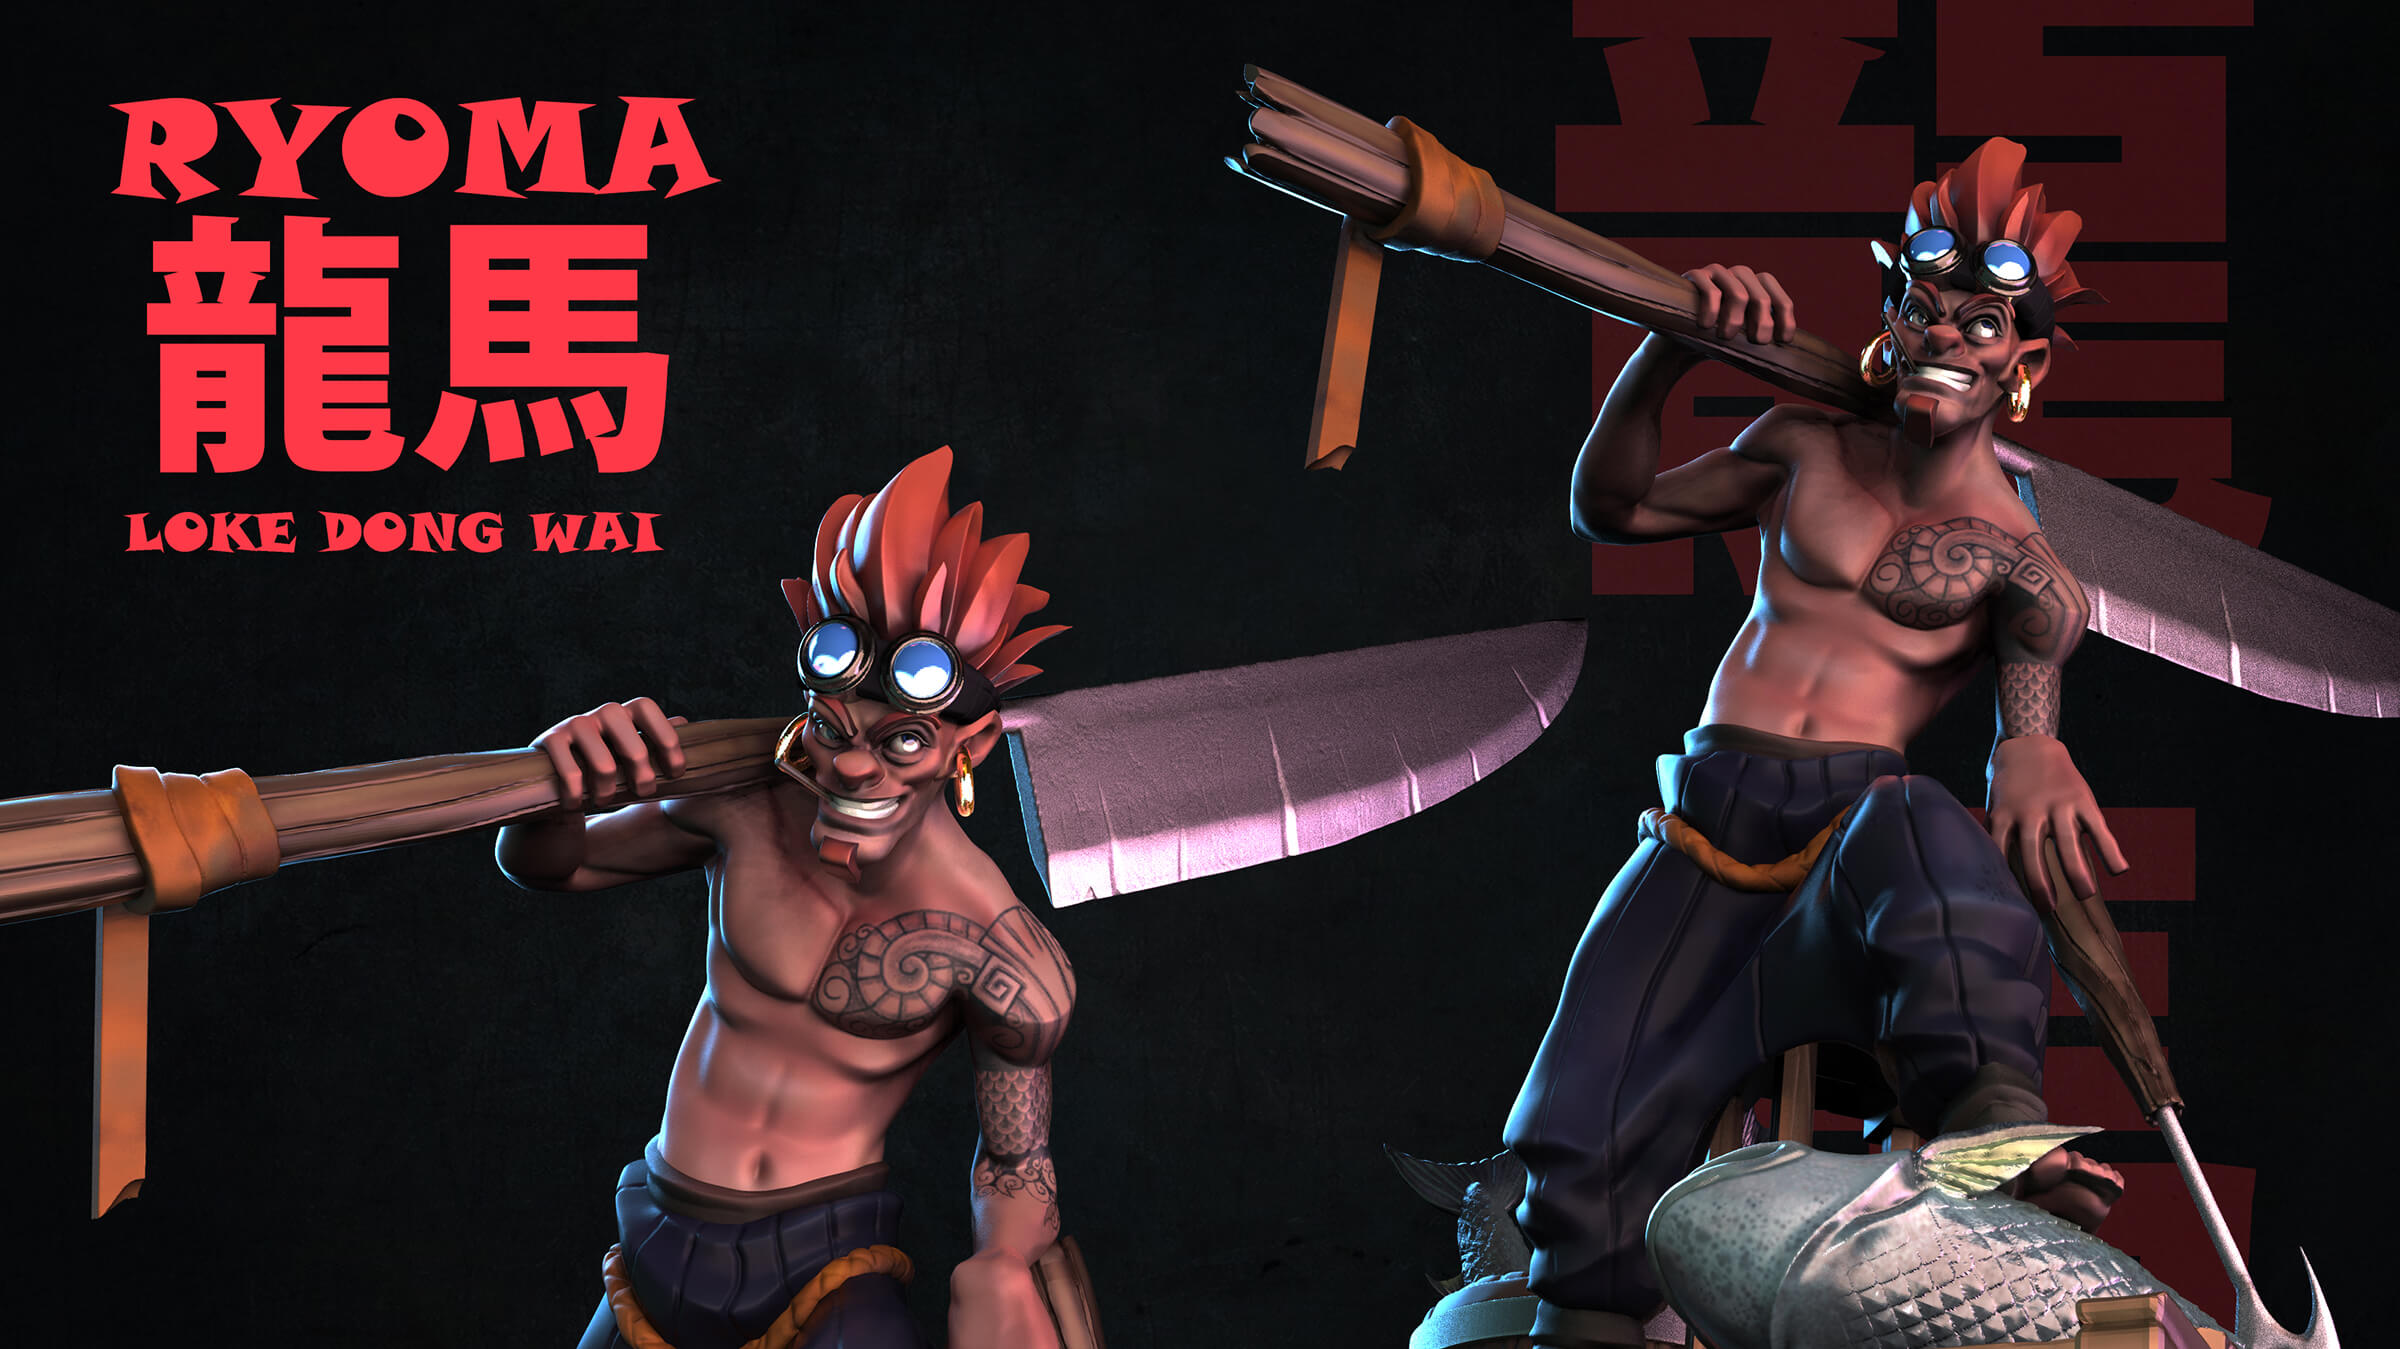 A muscled character with a large knife and spiked red hair